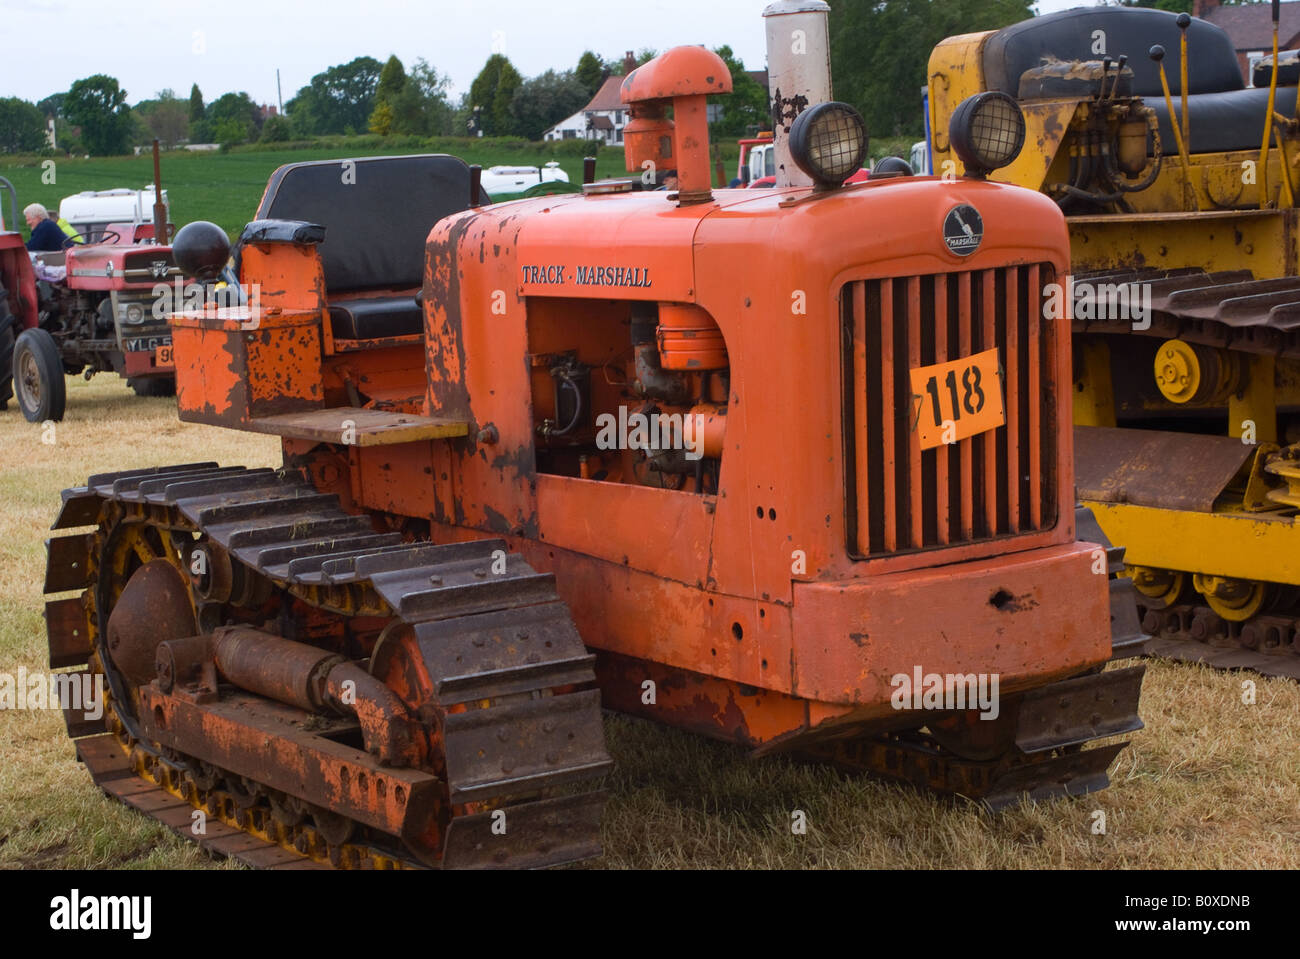 Old Antique Caterpillar Tractors : Old orange track marshall caterpillar tractor at smallwood